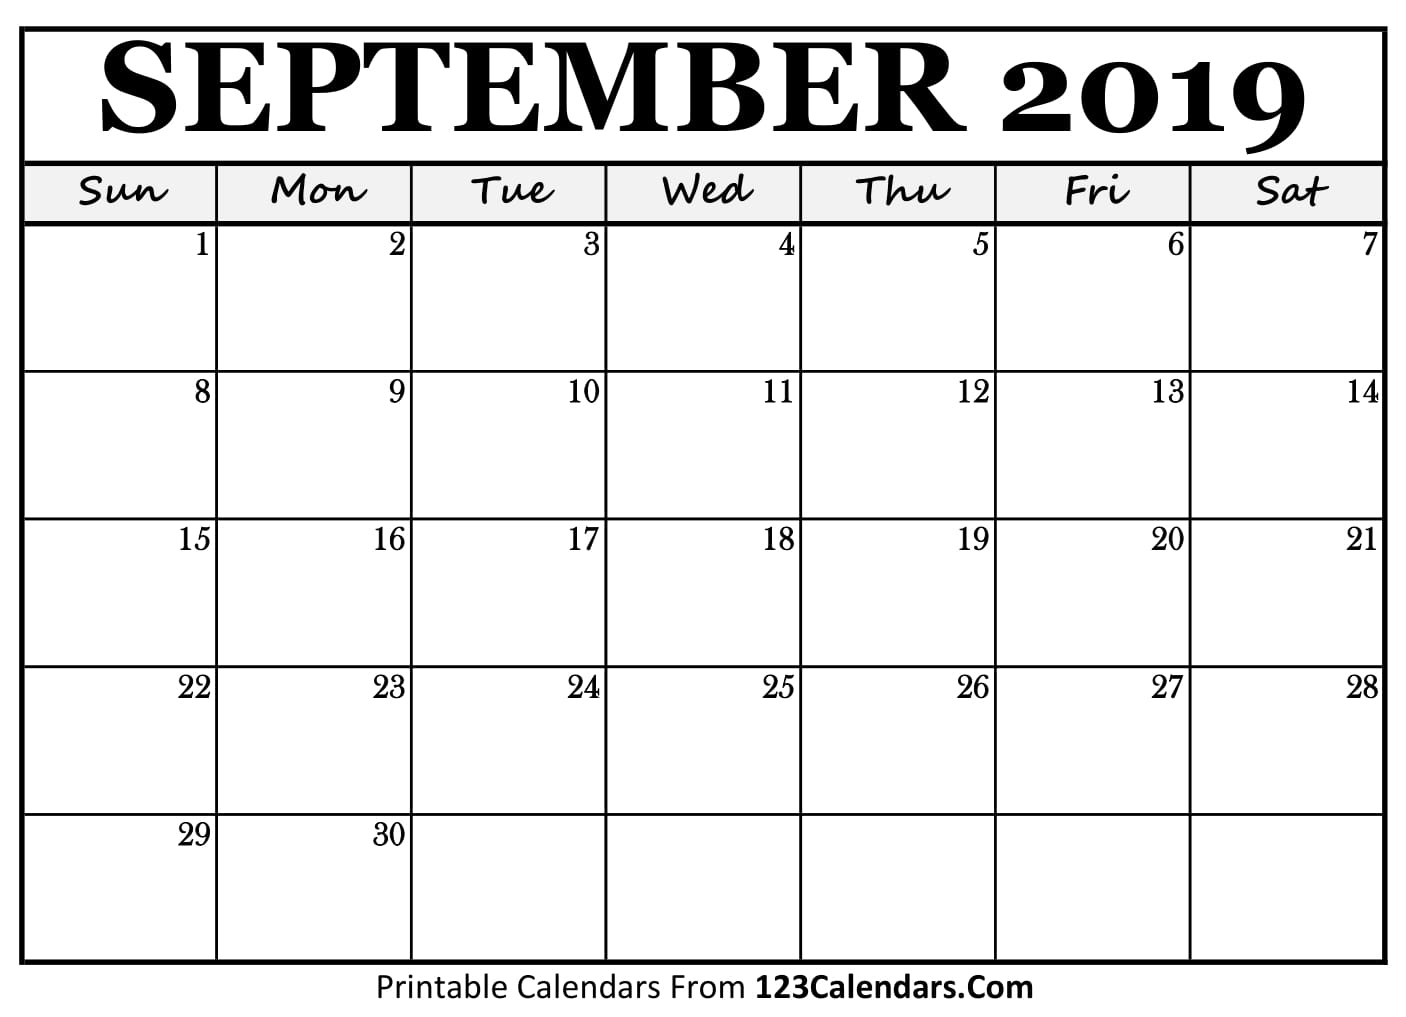 September 2019 Printable Calendar | 123Calendars throughout Blank September Calendar Printable